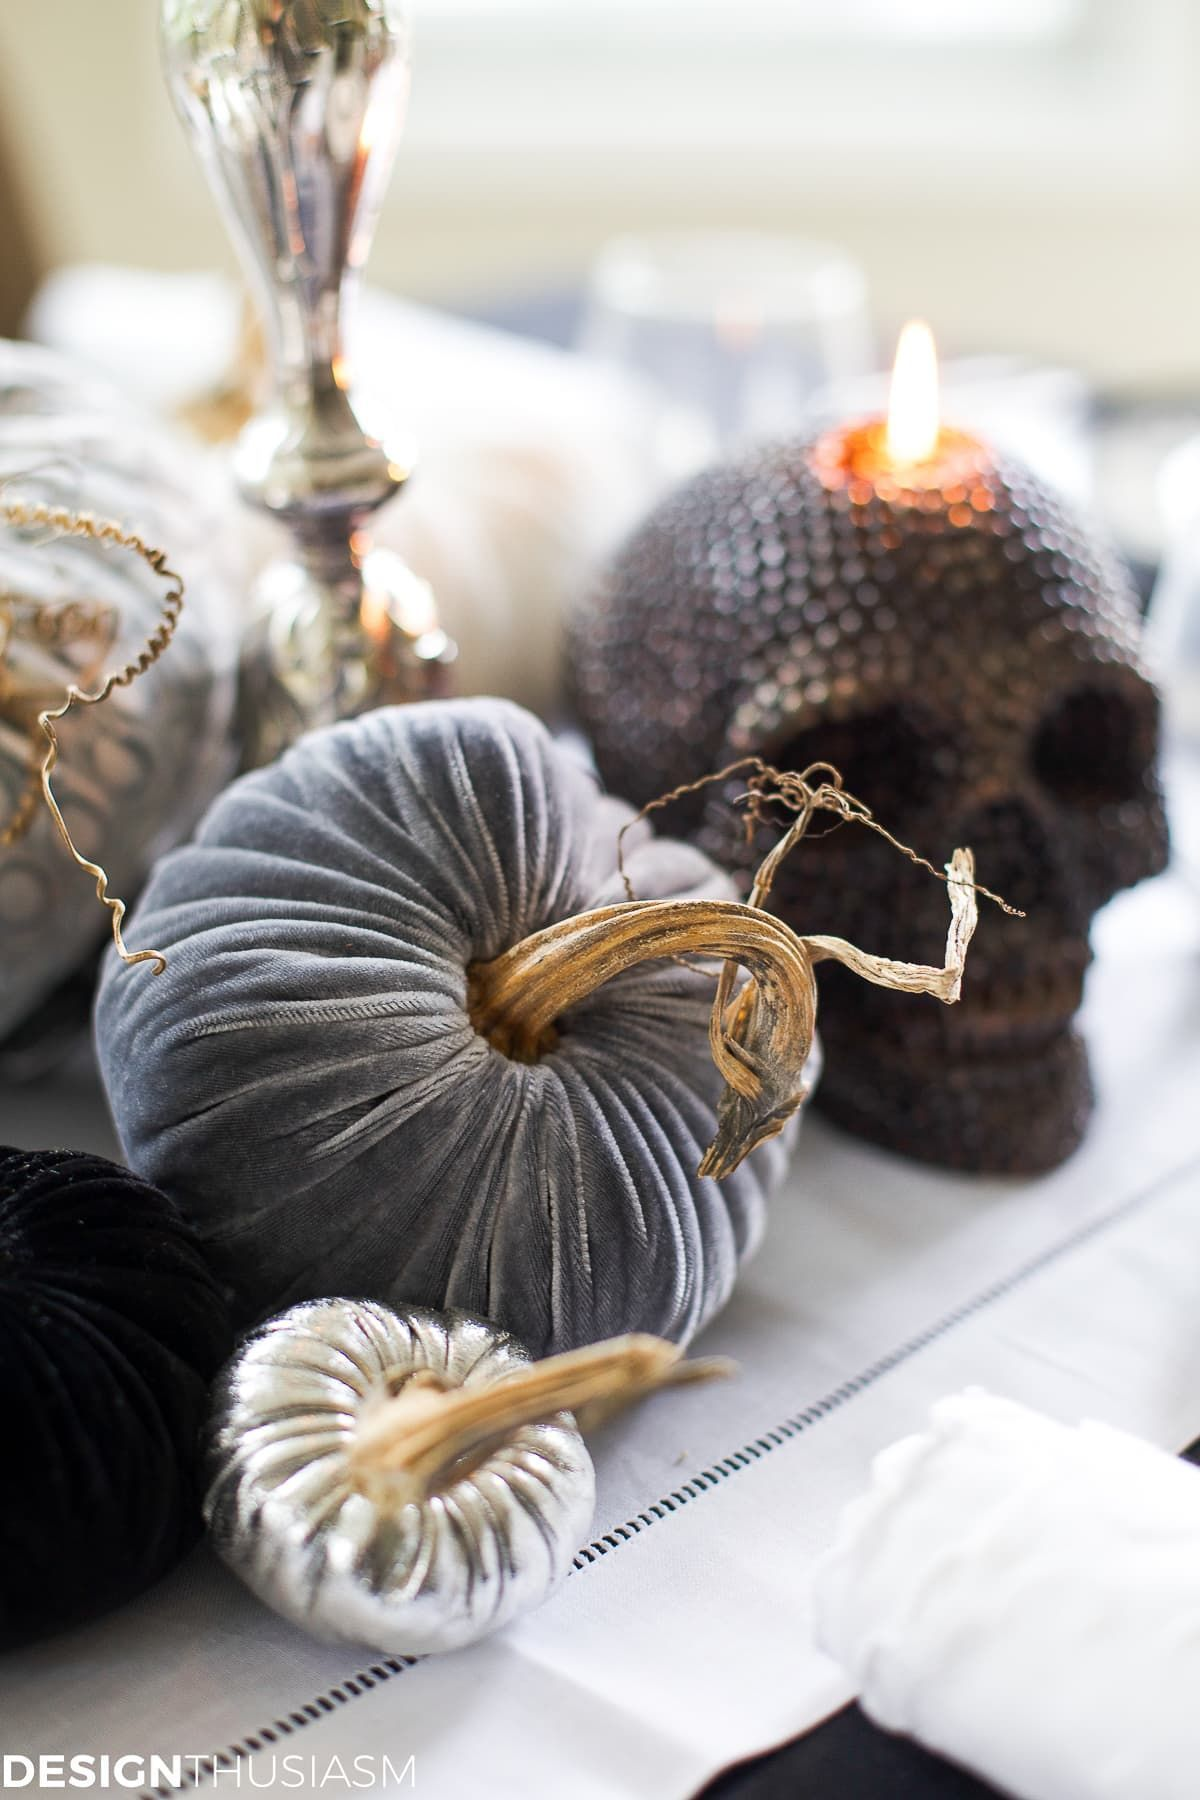 Halloween Decoration Ideas: How to Style Elegant Halloween Home Decor #eleganthalloweendecor Halloween Decorating | If you're looking for Halloween decor ideas but prefer elegant Halloween home decor, these Halloween decoration ideas are for you. ----- #halloweendecorations #halloweendecorideas #halloweenhousetour #halloweendecoratingideas #eleganthalloweendecorations #halloweenhousedecoration #halloweentabledecorations #halloweenparty #halloweentabledecor #halloweentablescapes #eleganthalloween #eleganthalloweendecor